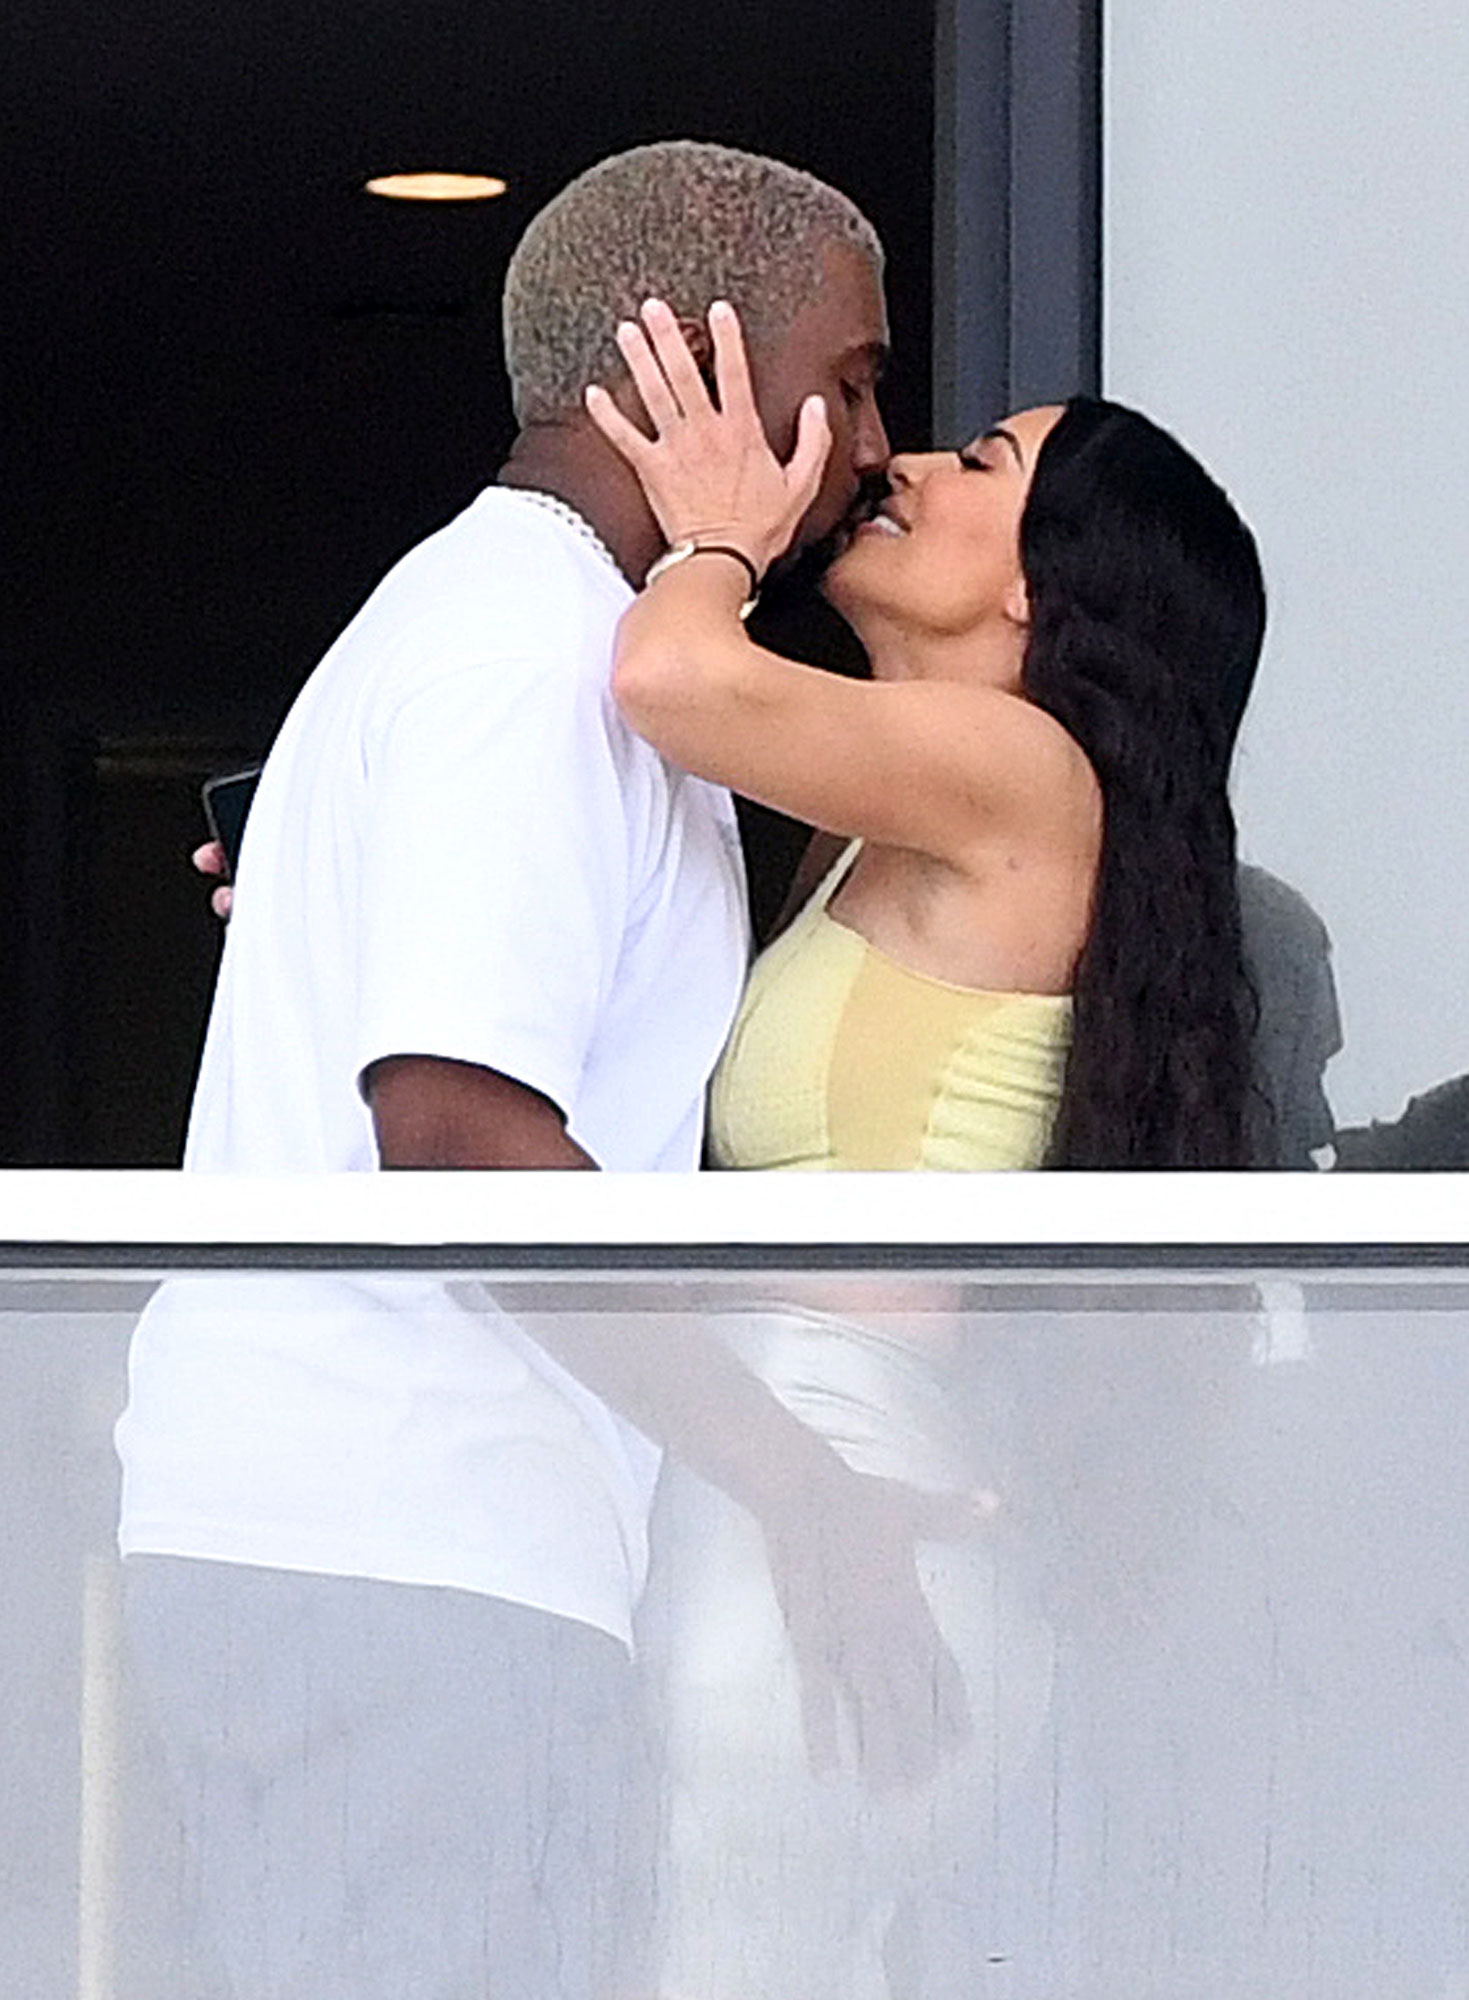 Kim Kardashian and Kanye West share a passionate kiss on their new balcony at the Faena House condo in MiamiBeach